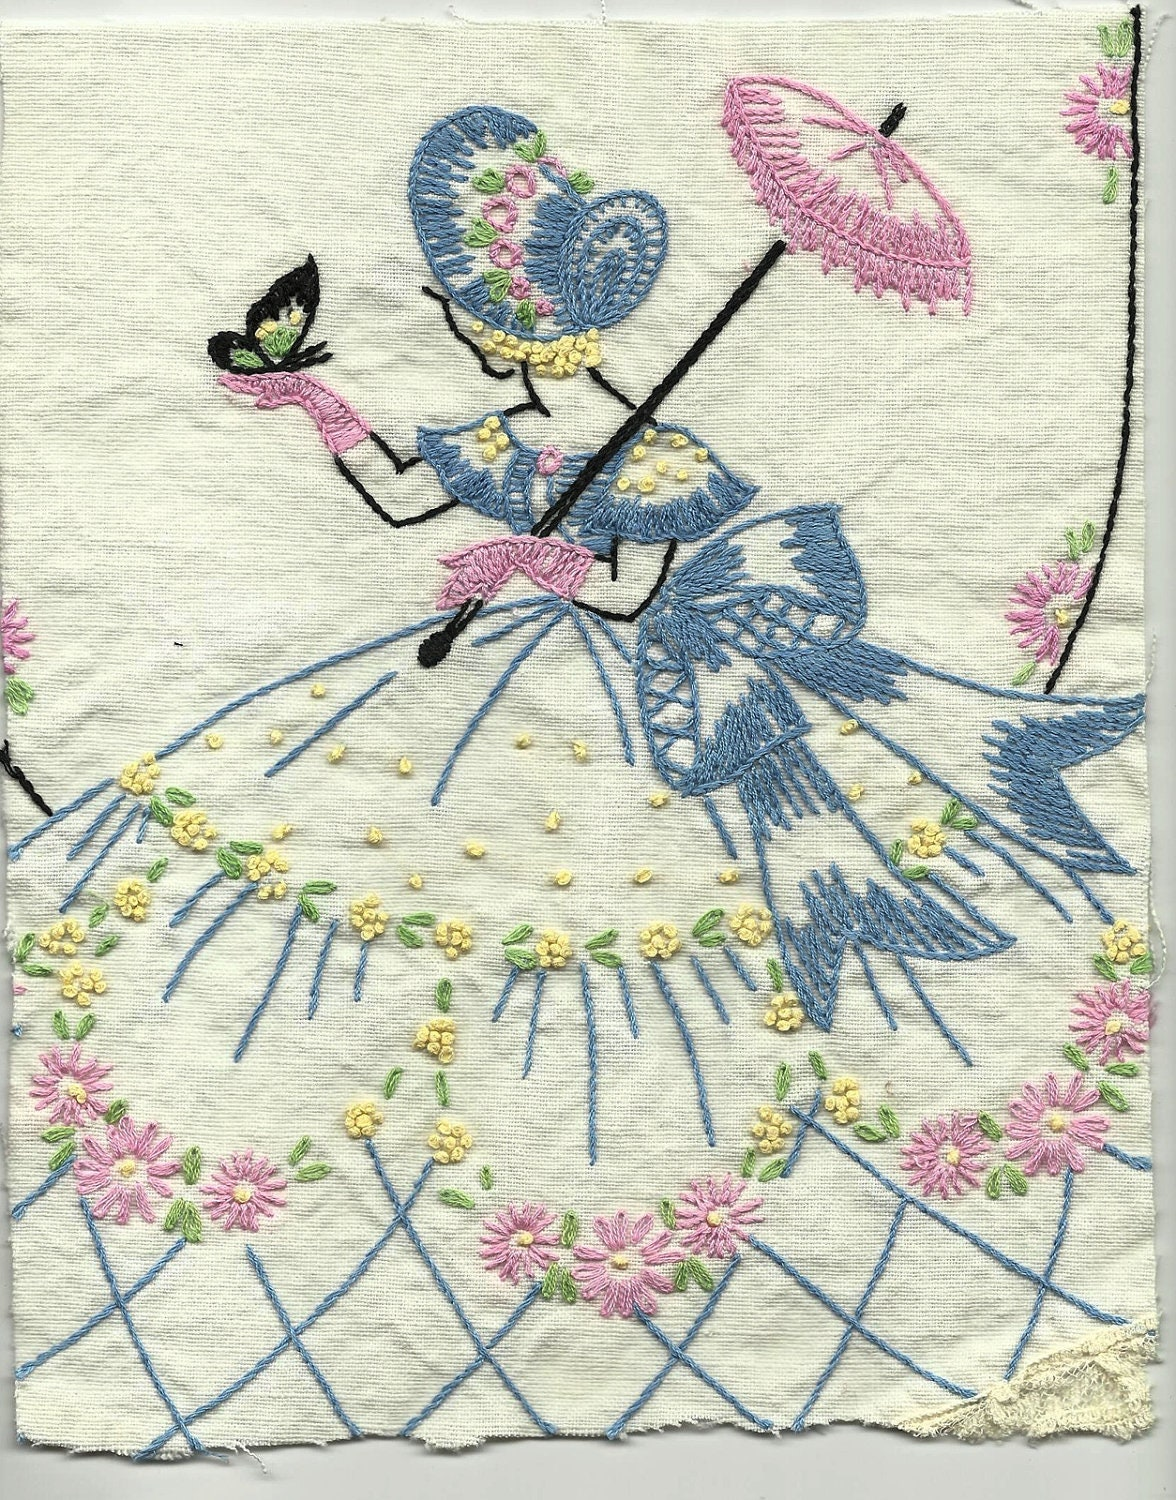 Vintage southern belle embroidery handwork linens hand